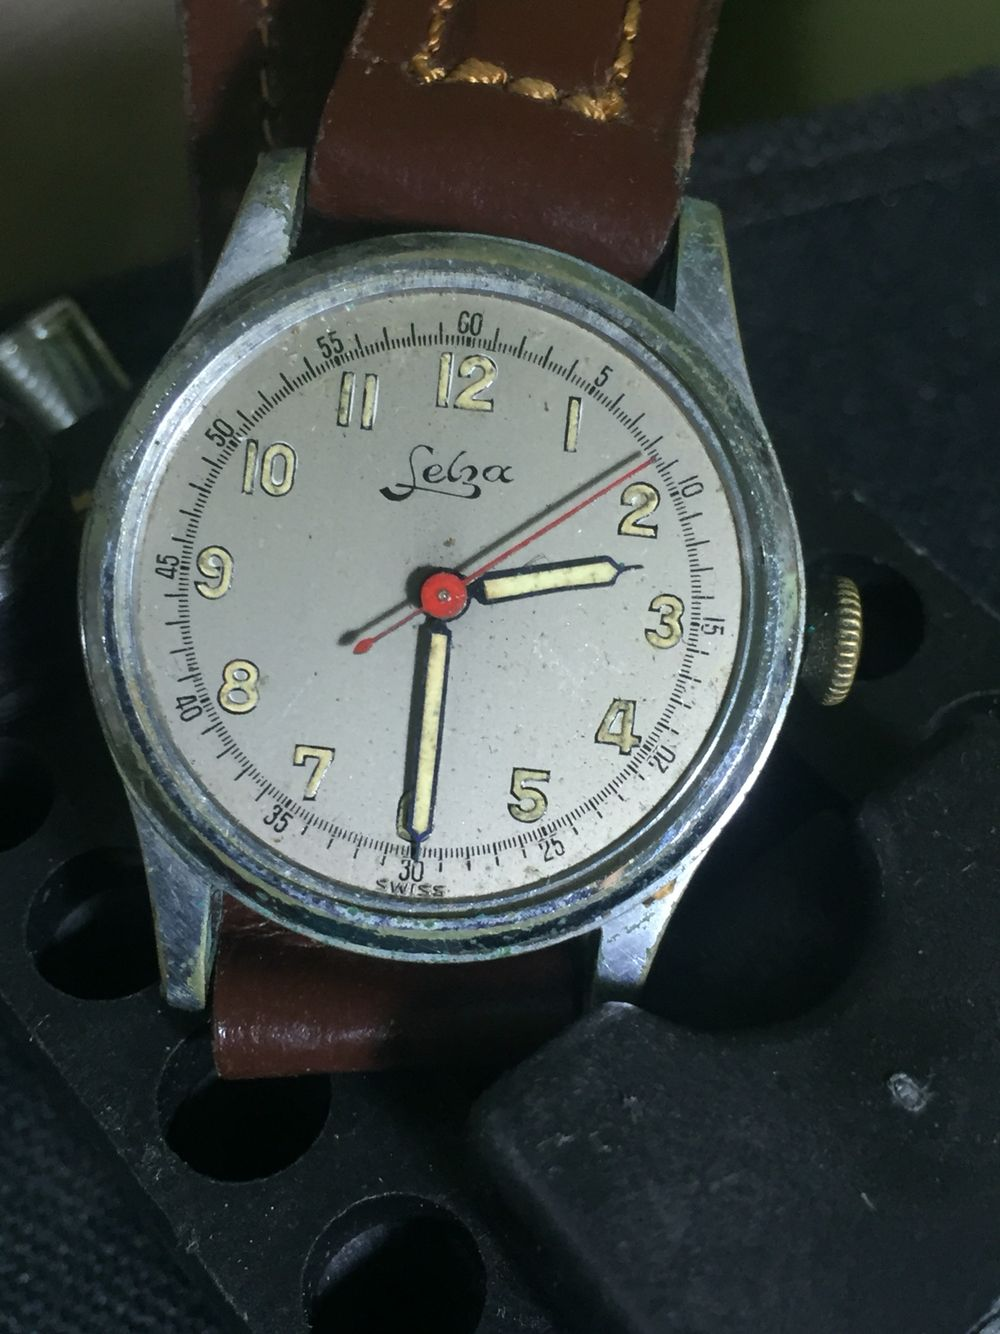 Dating hmt watches